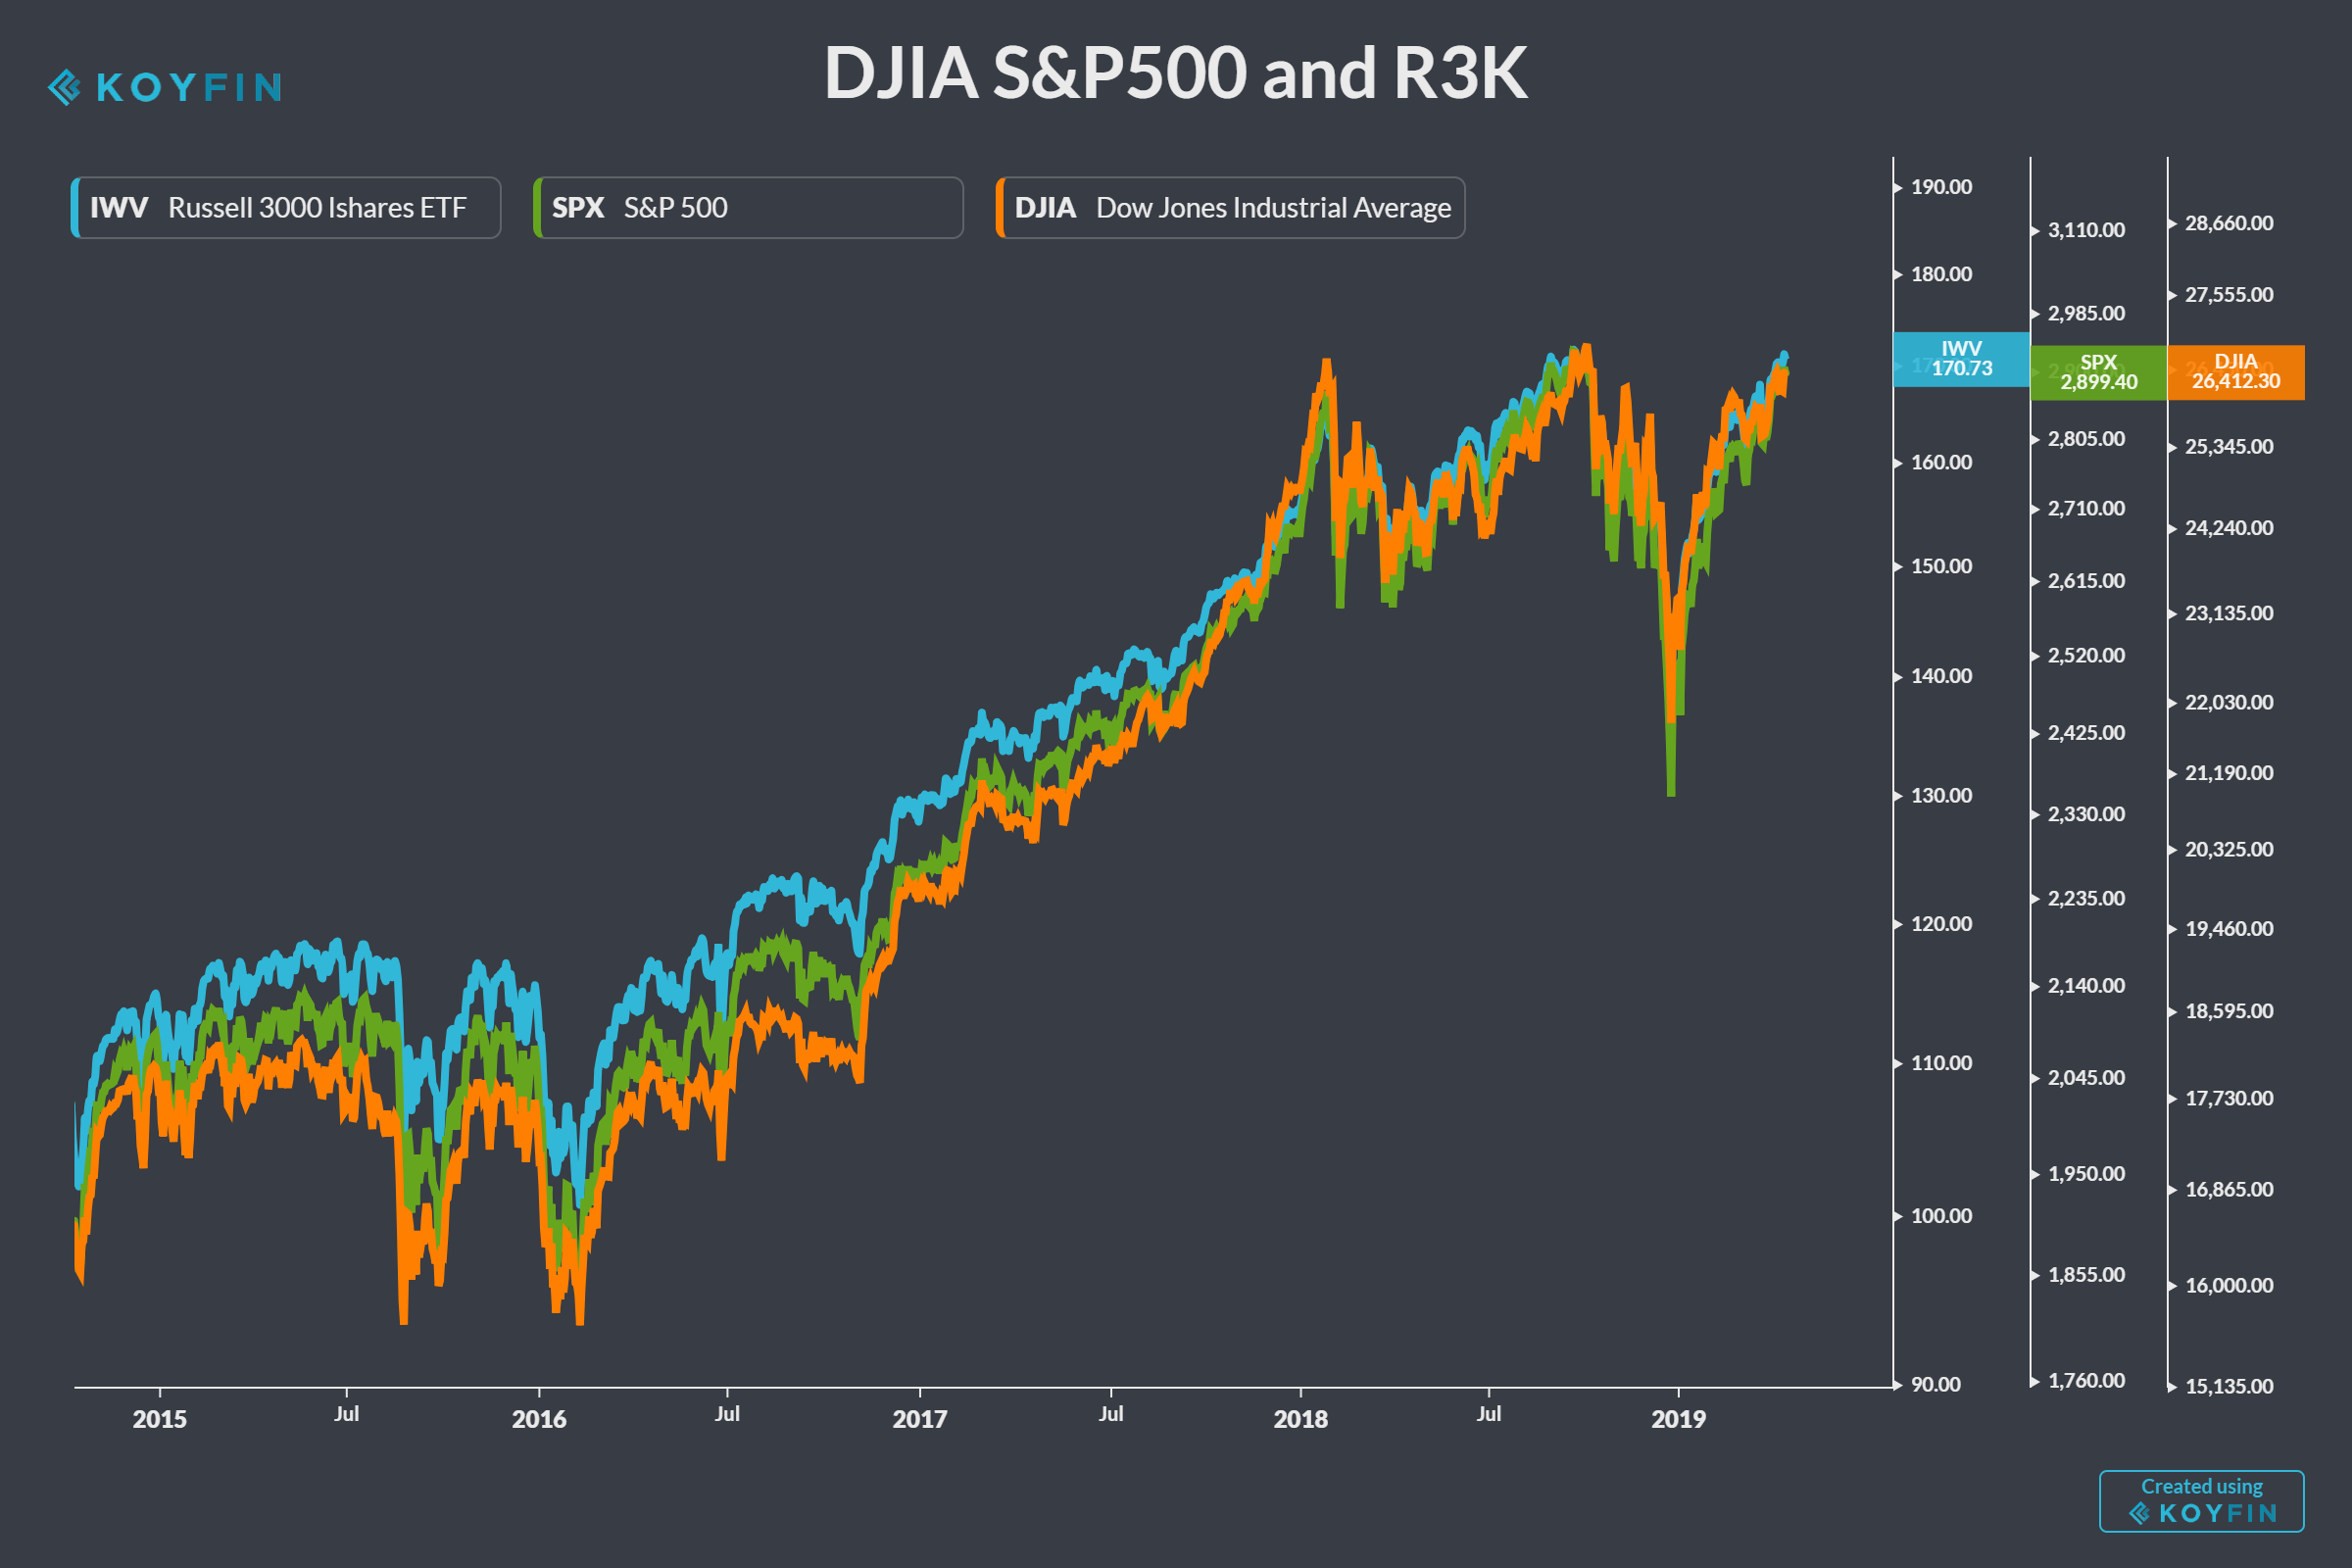 Five-year history of the Dow Jones Industrial Average, the S&P 500 Index, and the Russell 3000 Index